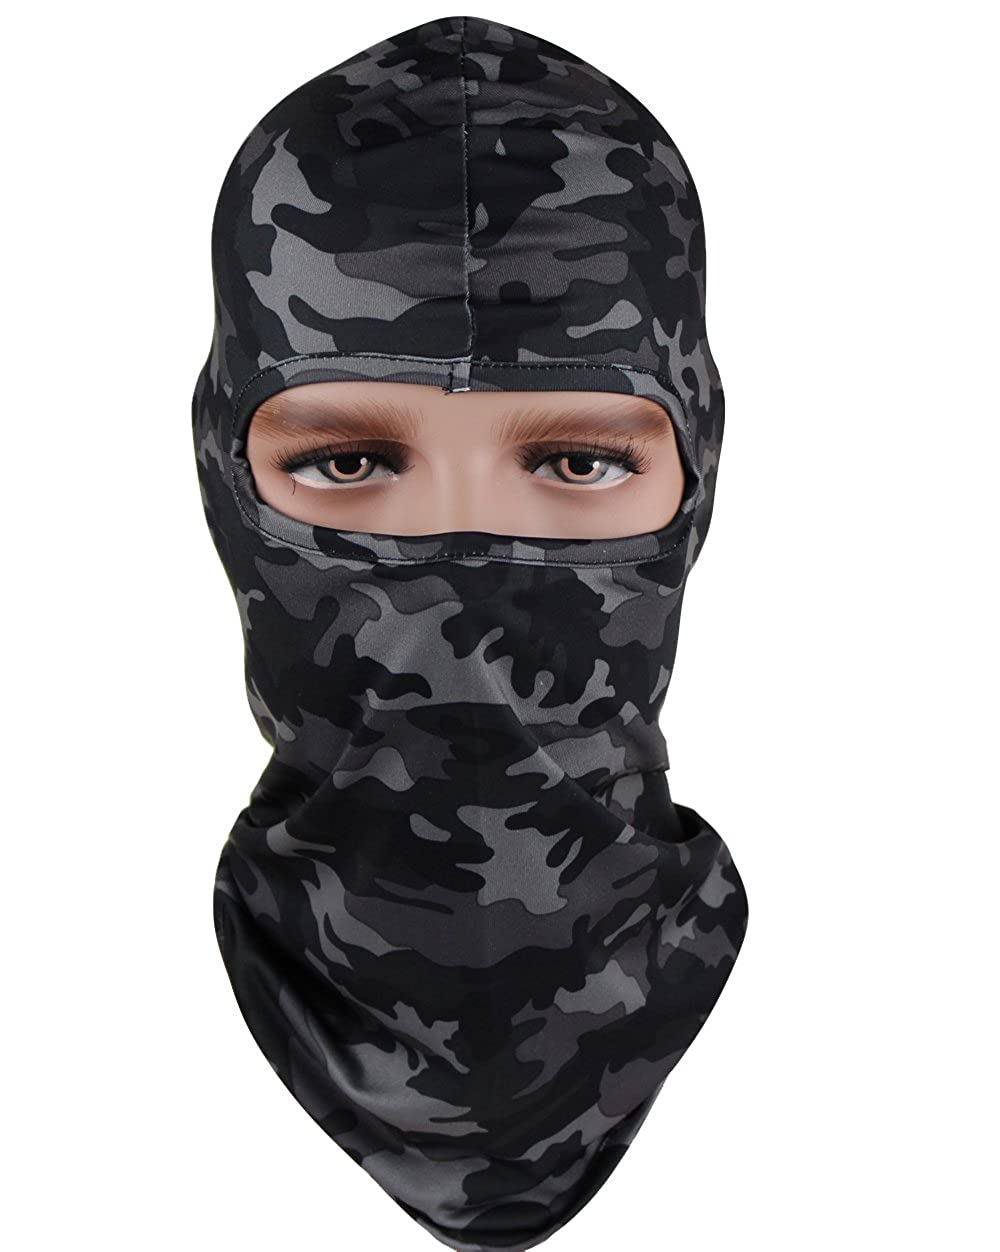 GANWAY Cs Hat Stretch Tactical Outdoor Ski Balaclava Motorcycle Mask Scarf Cap